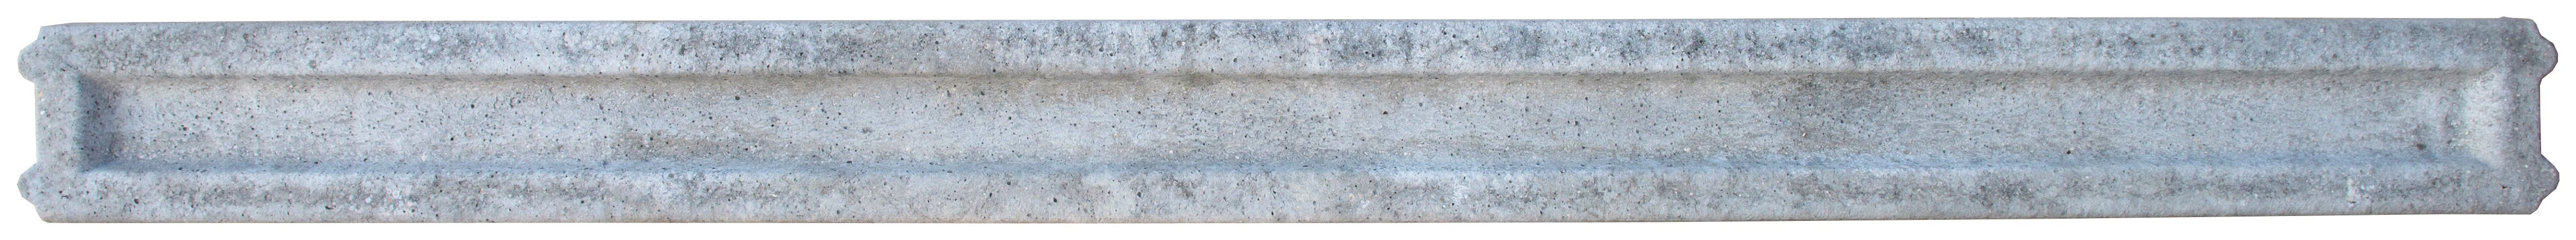 Forest Slotted Intermediate Fence Posts - Pack of 2. lowest price